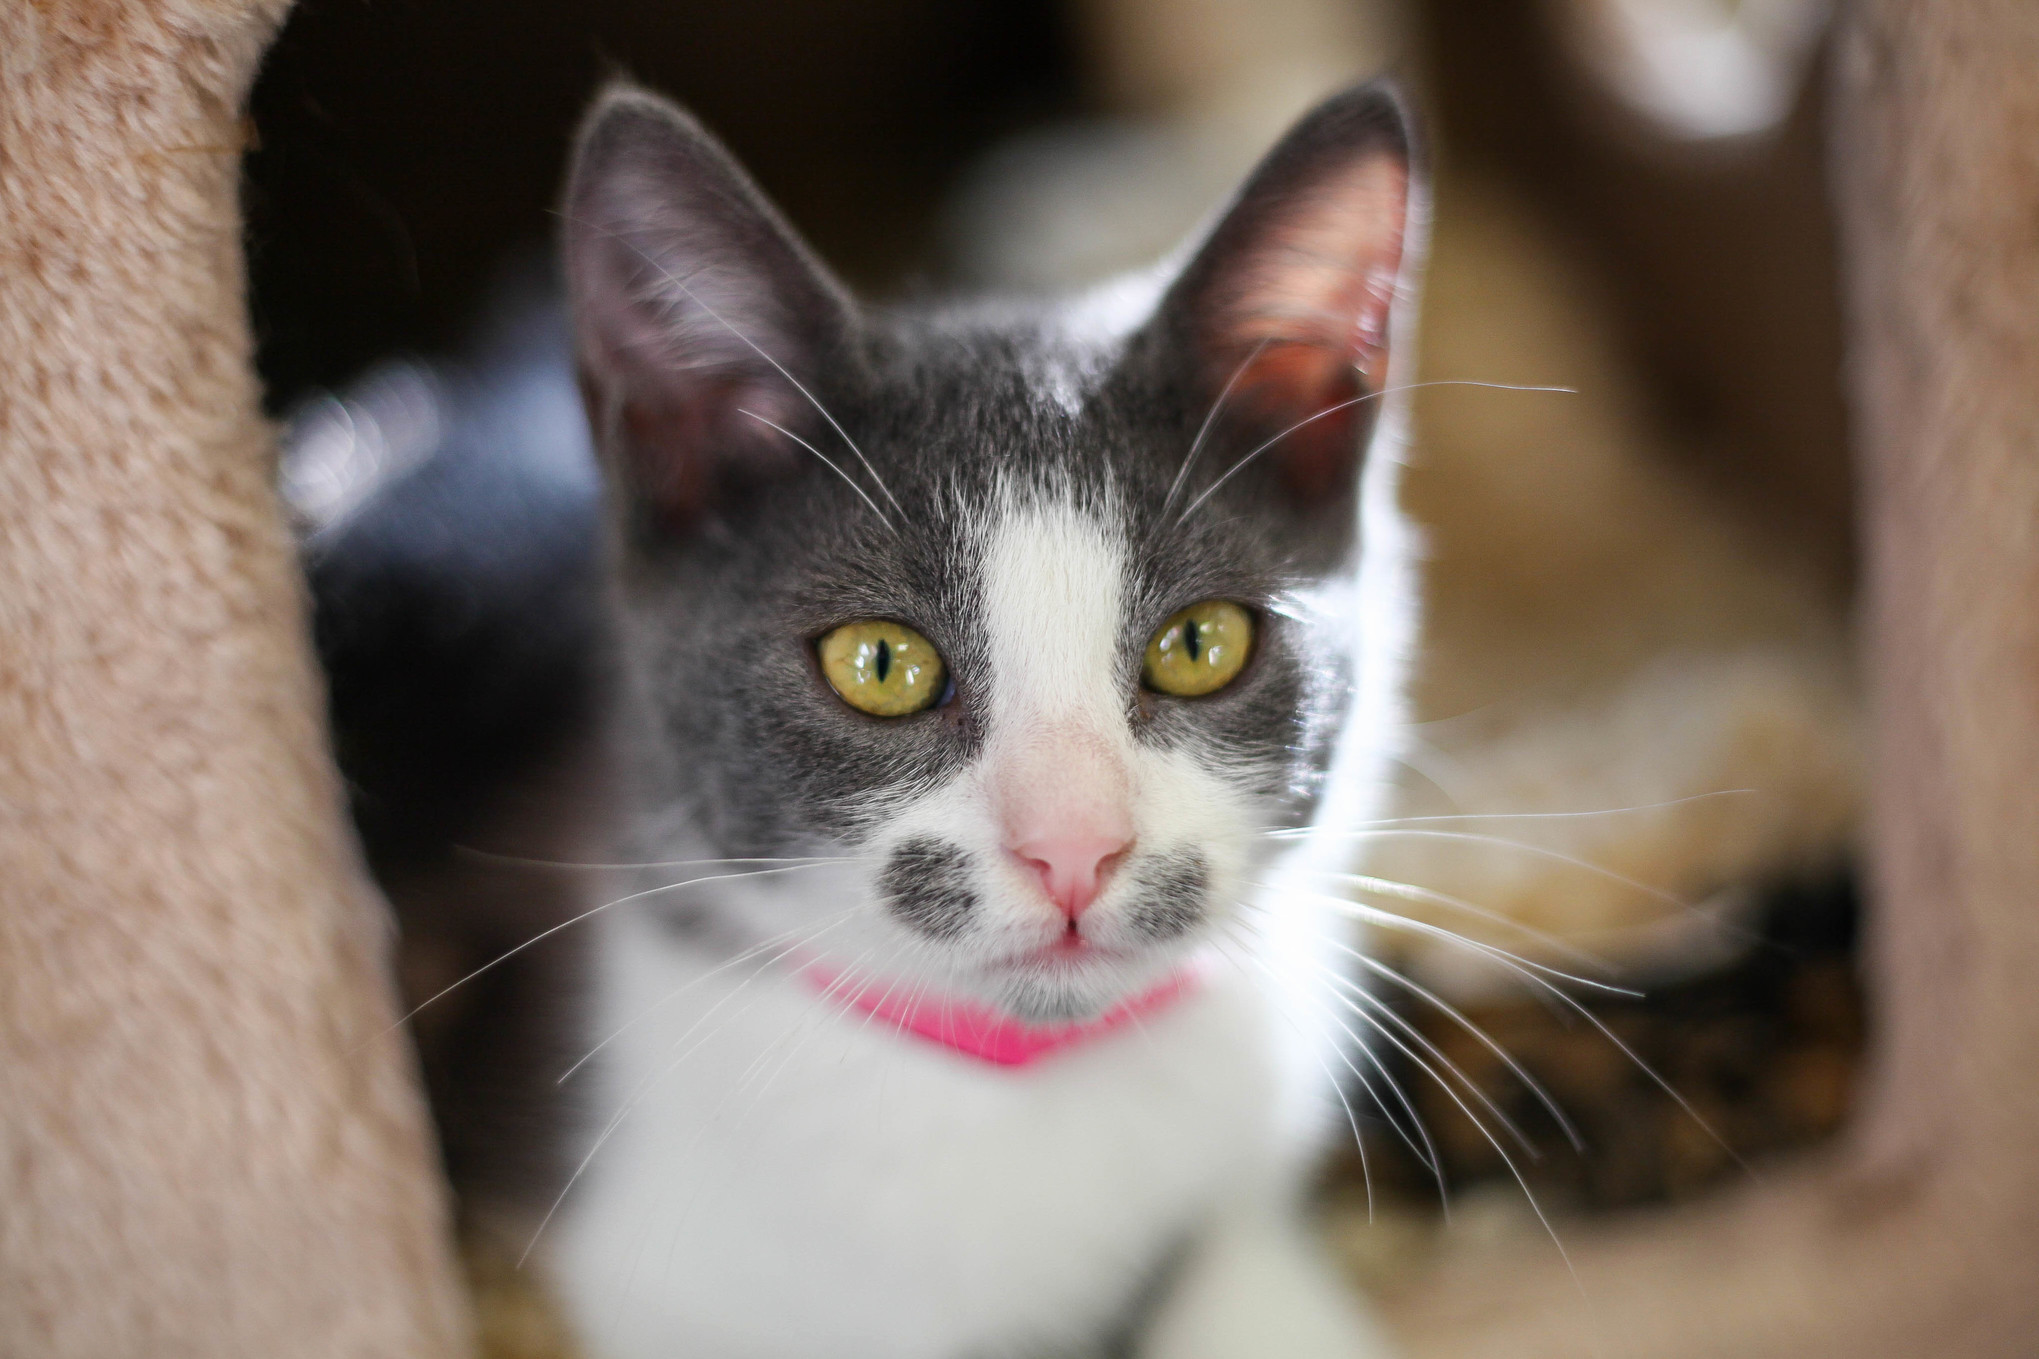 Adorable shelter kitten with unique face markings.